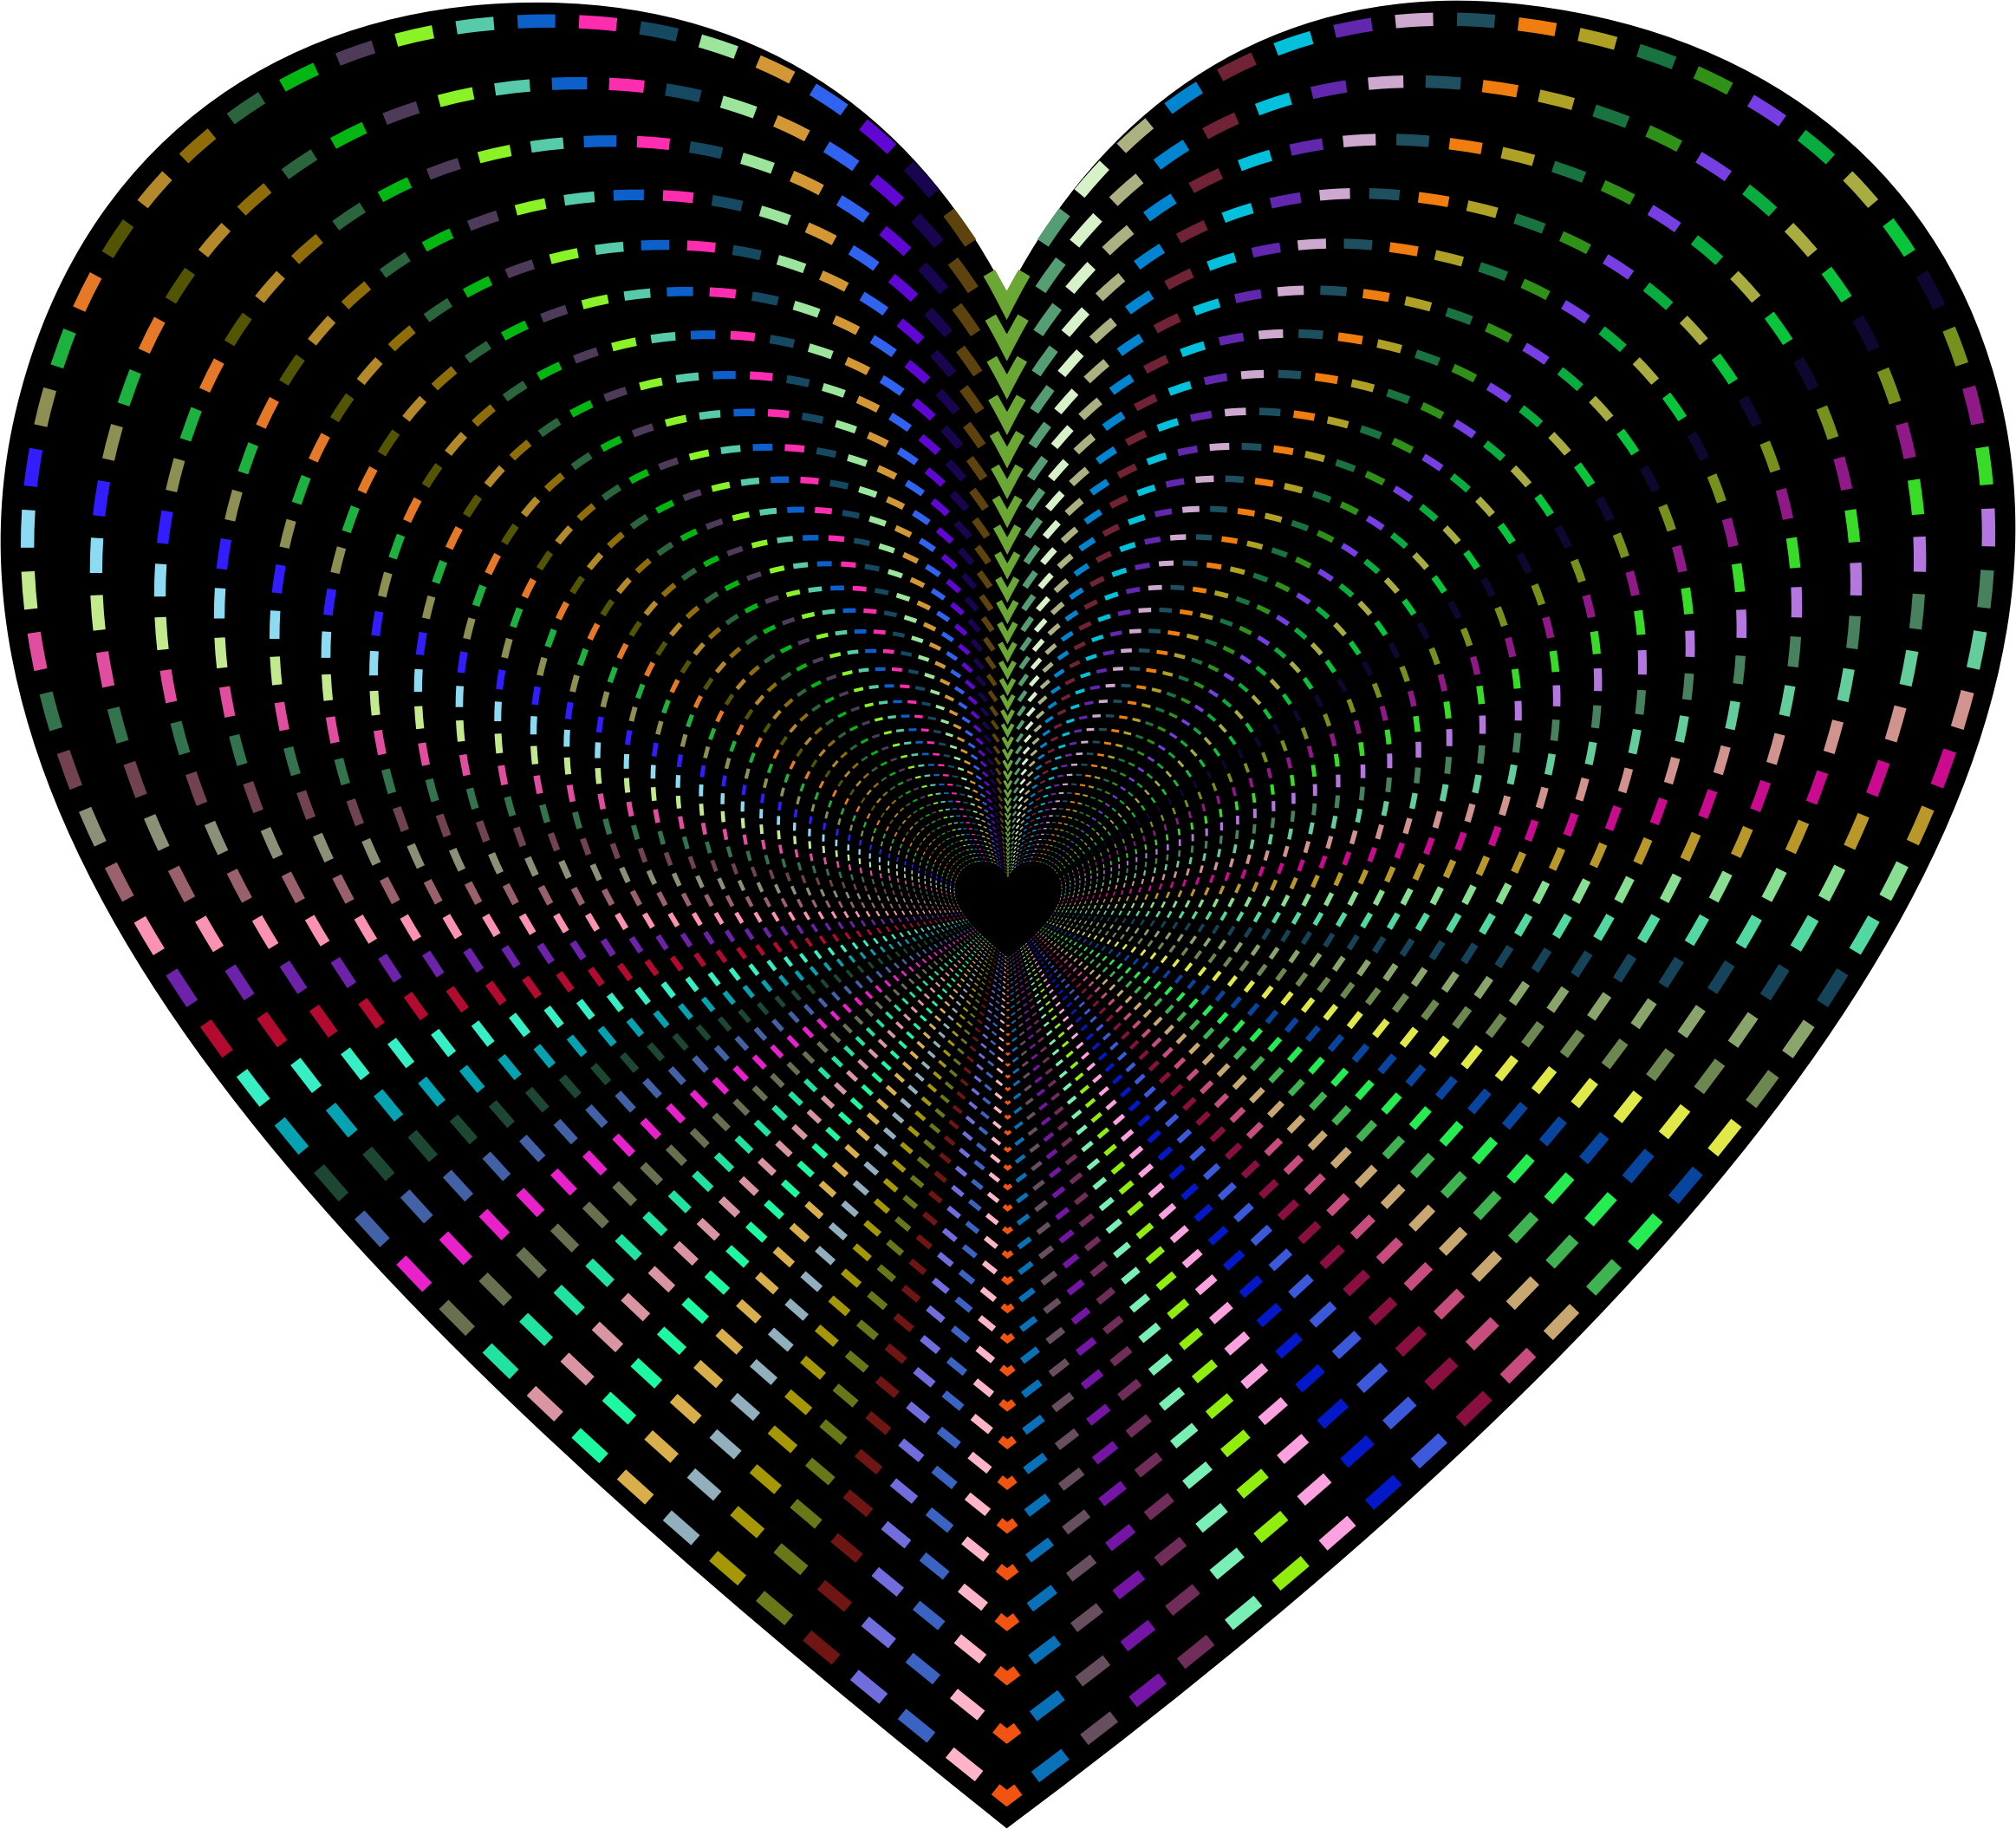 Dashed Line Art Heart Tunnel by GDJ